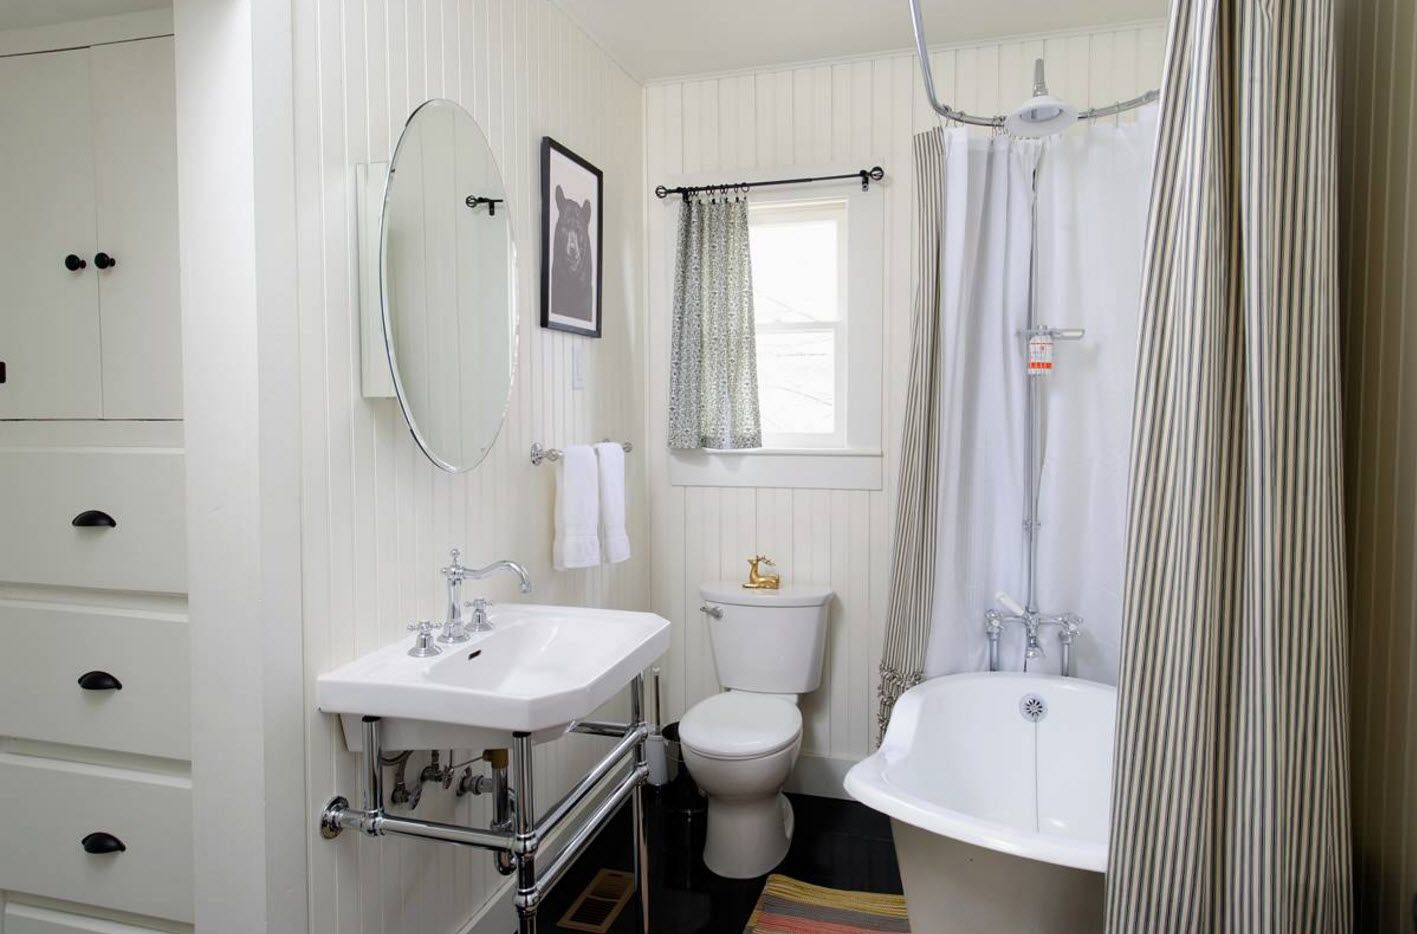 Functional vintage design of the small bathroom